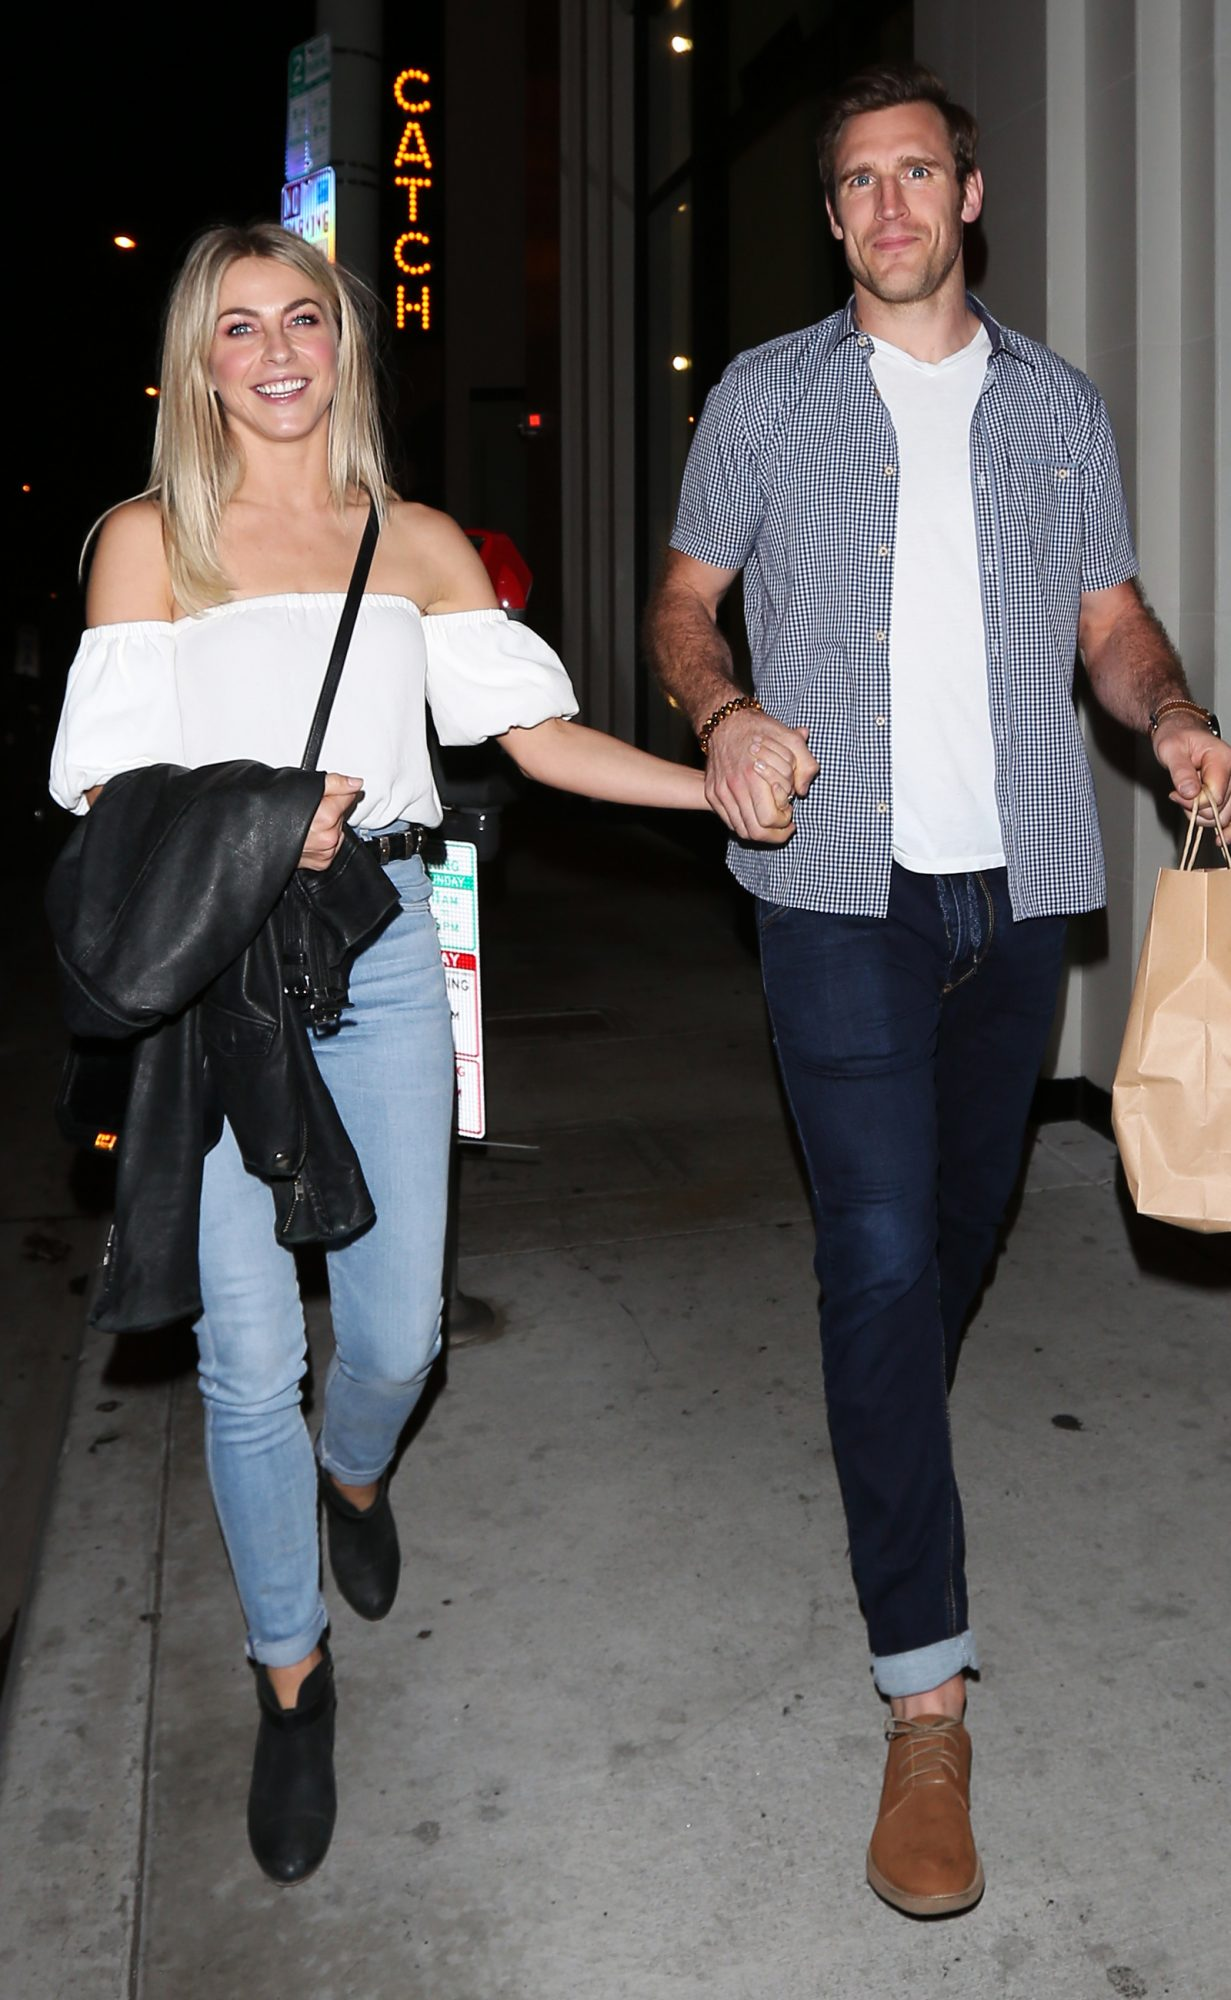 Julianne Hough and fiance Brooks Laich show some PDA as they leave Catch restaurant after having dinner